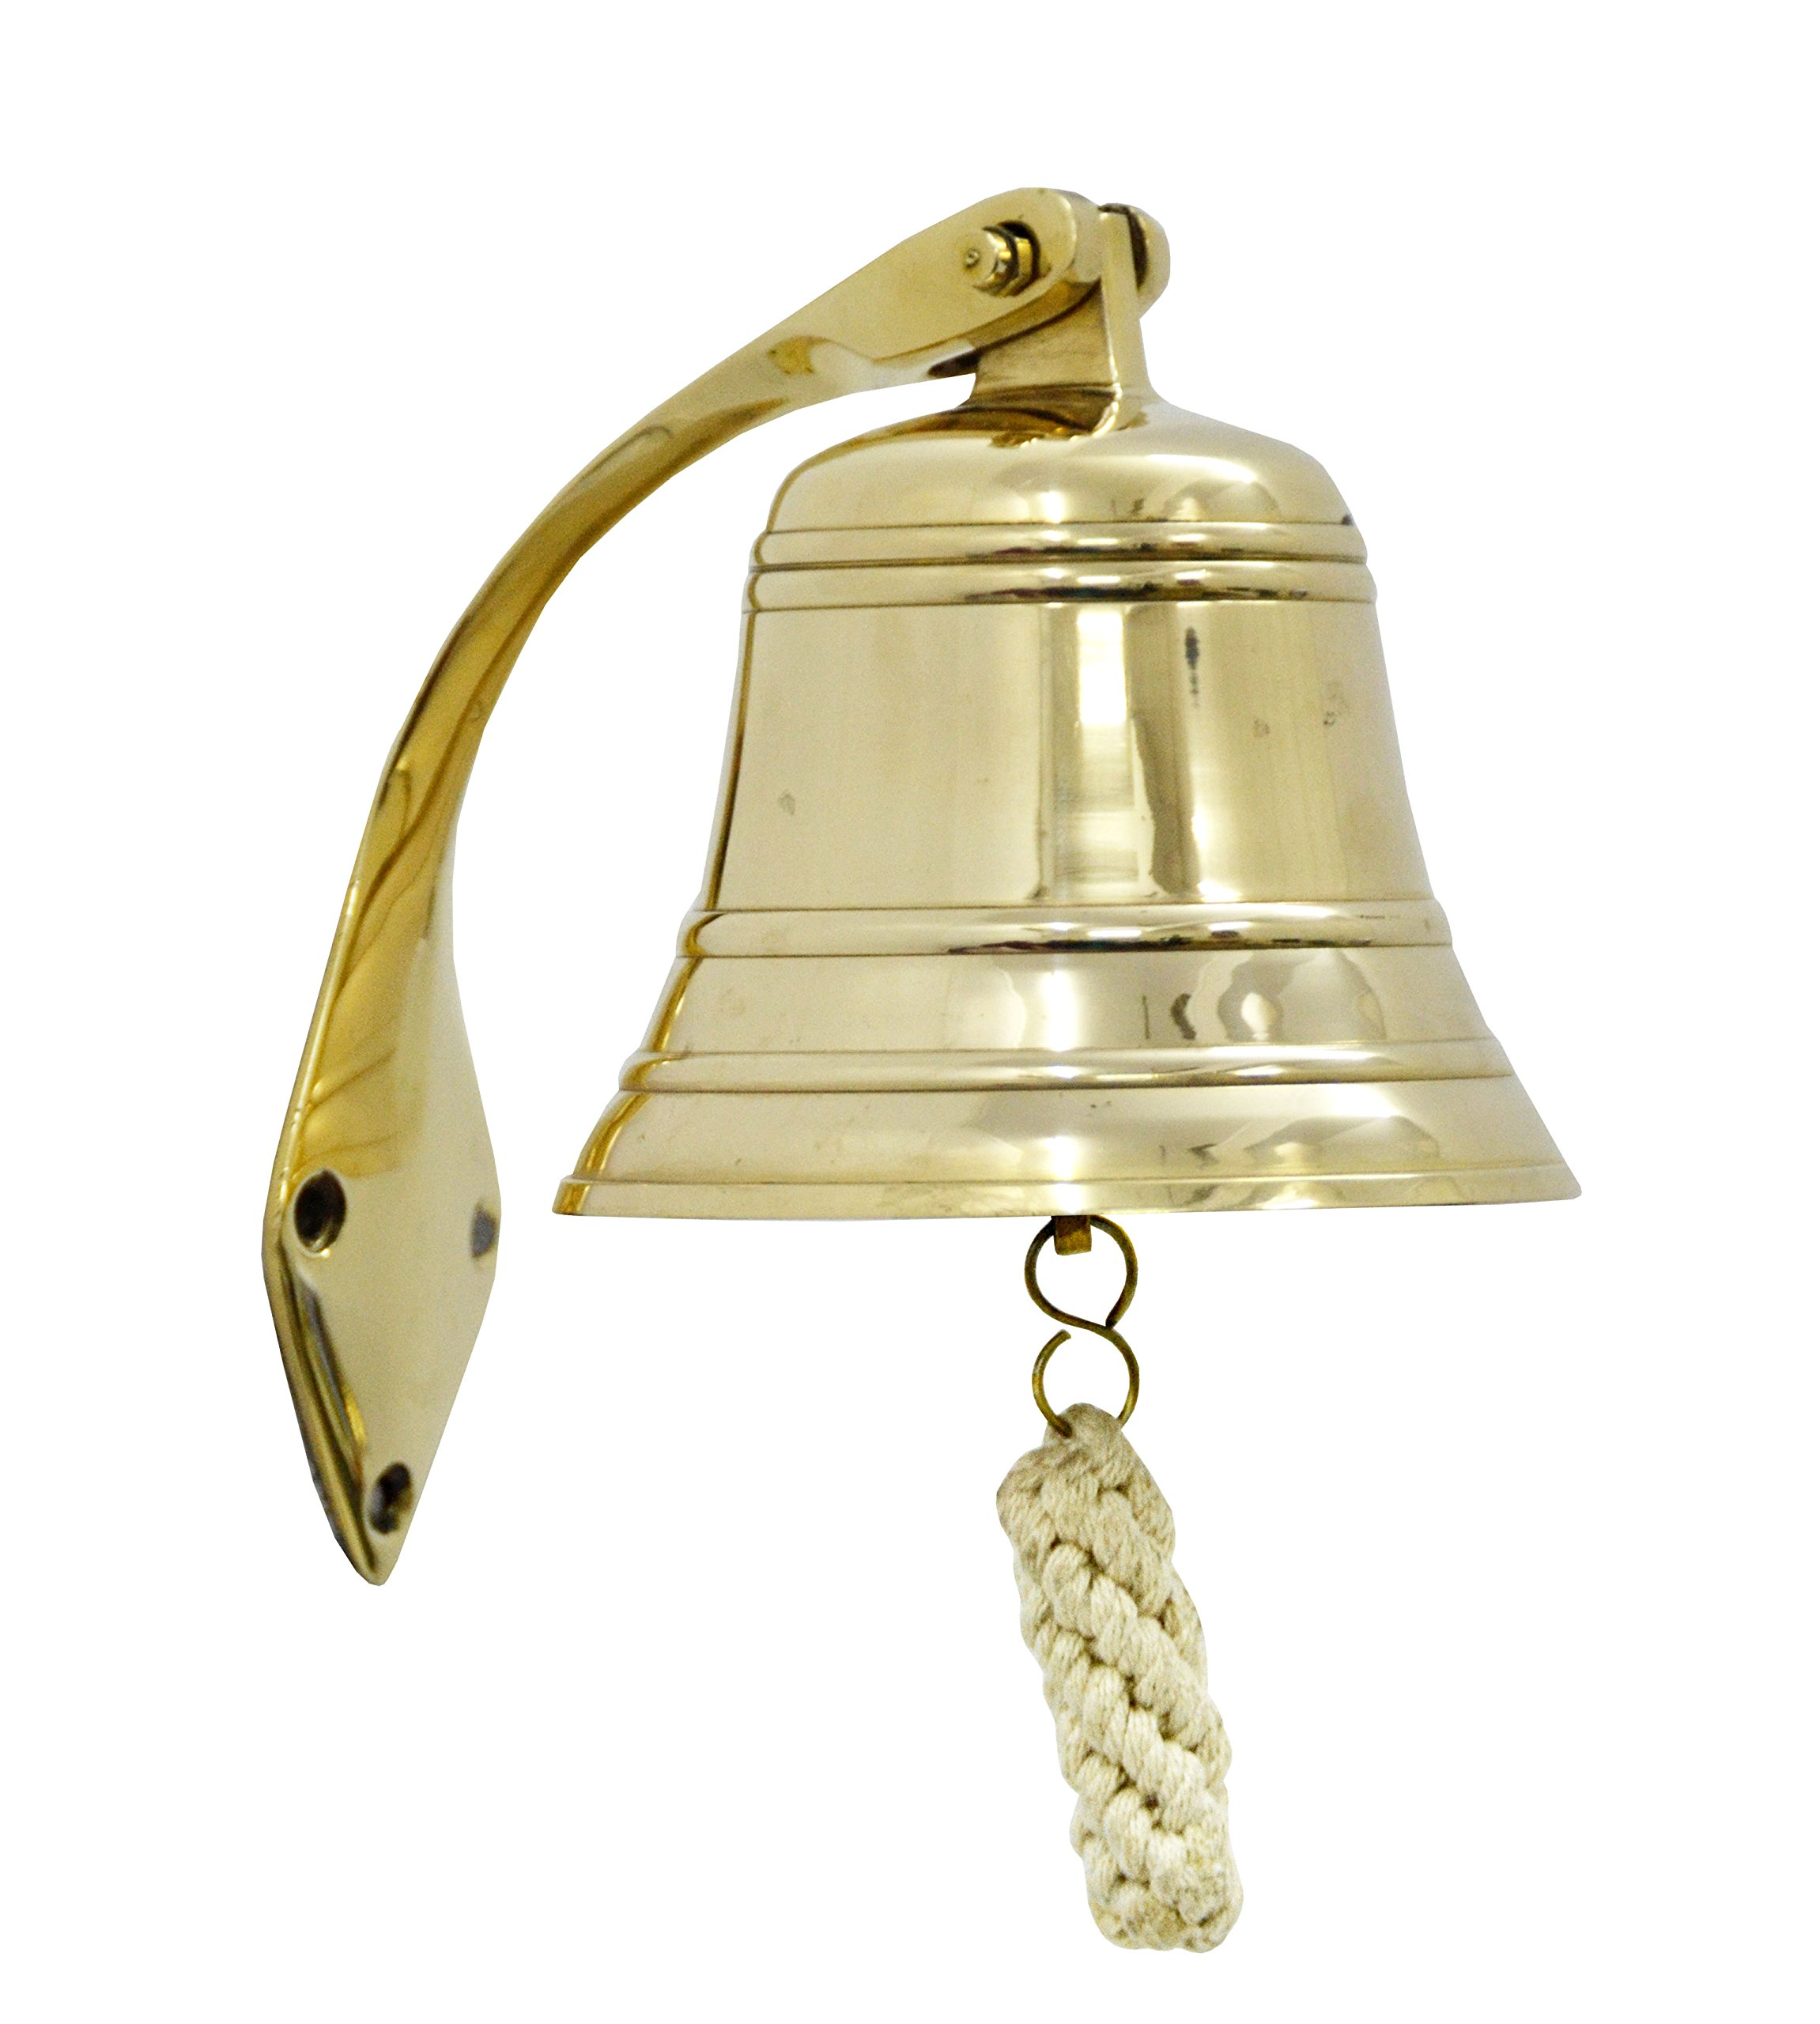 Brass Nautical Solid Brass Ships Bell / Nautical Bell, Polished Lacquered Finish